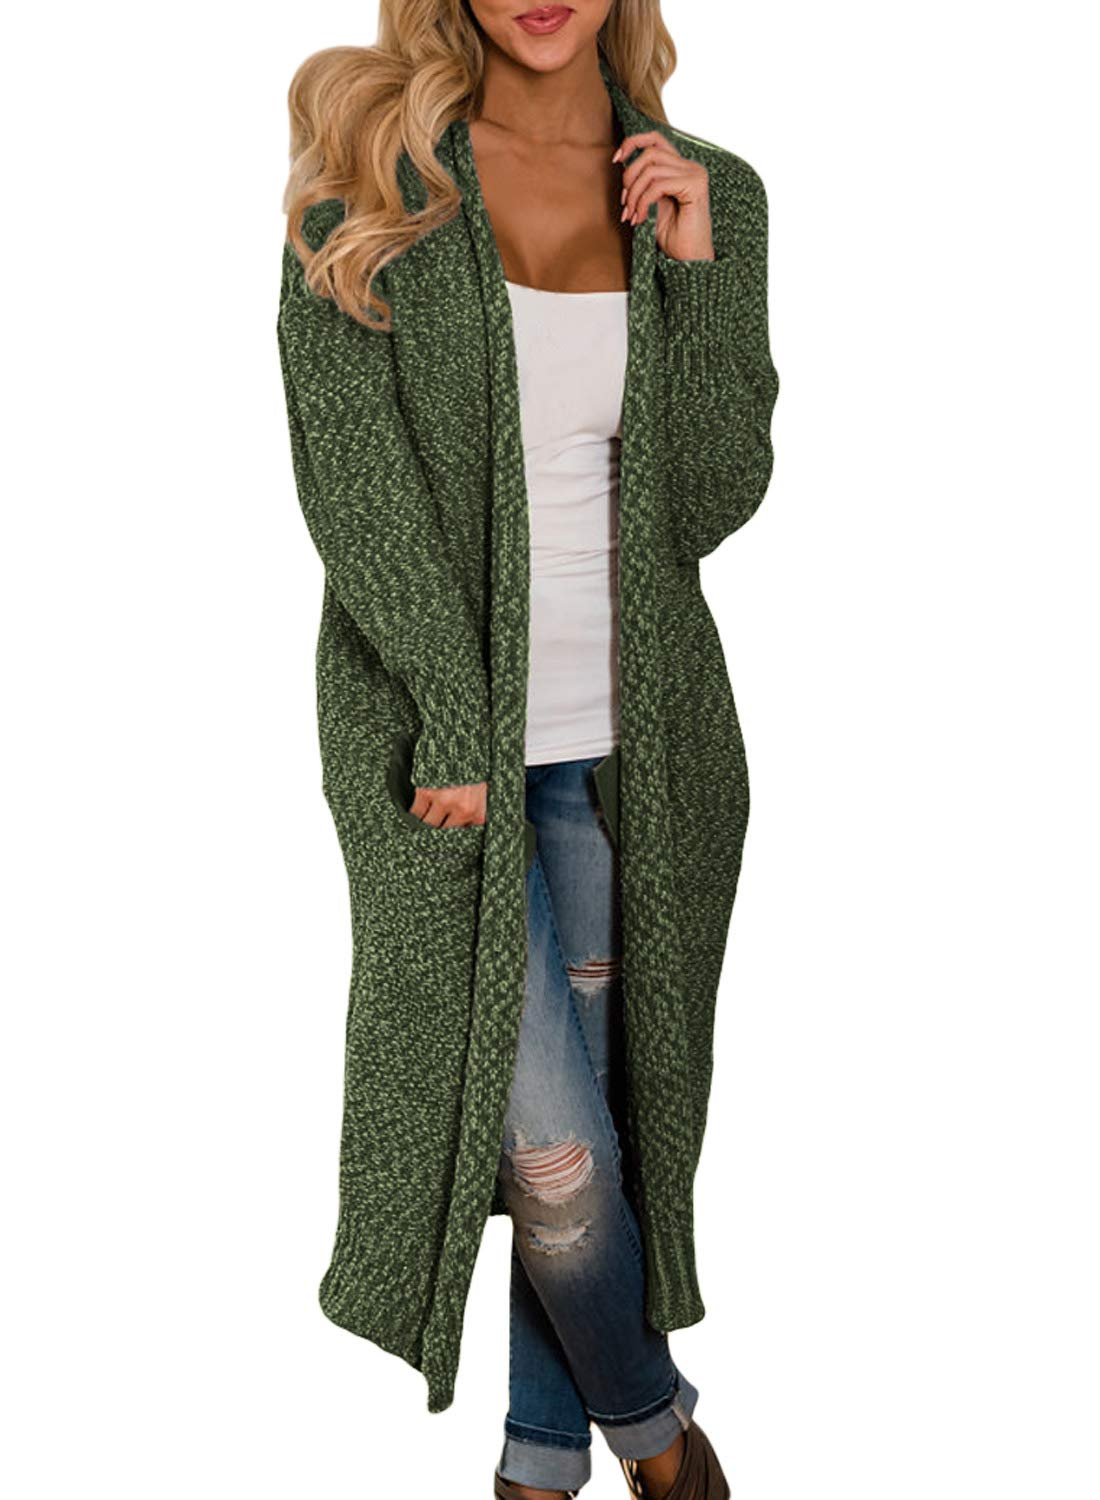 HOTAPEI Womens Cardigans Fall Winter Pockets Cable Knit Long Sleeve Loose Oversized Open Front Long Cardigan Sweaters for Juniors Sweater Coats Olive Green XL